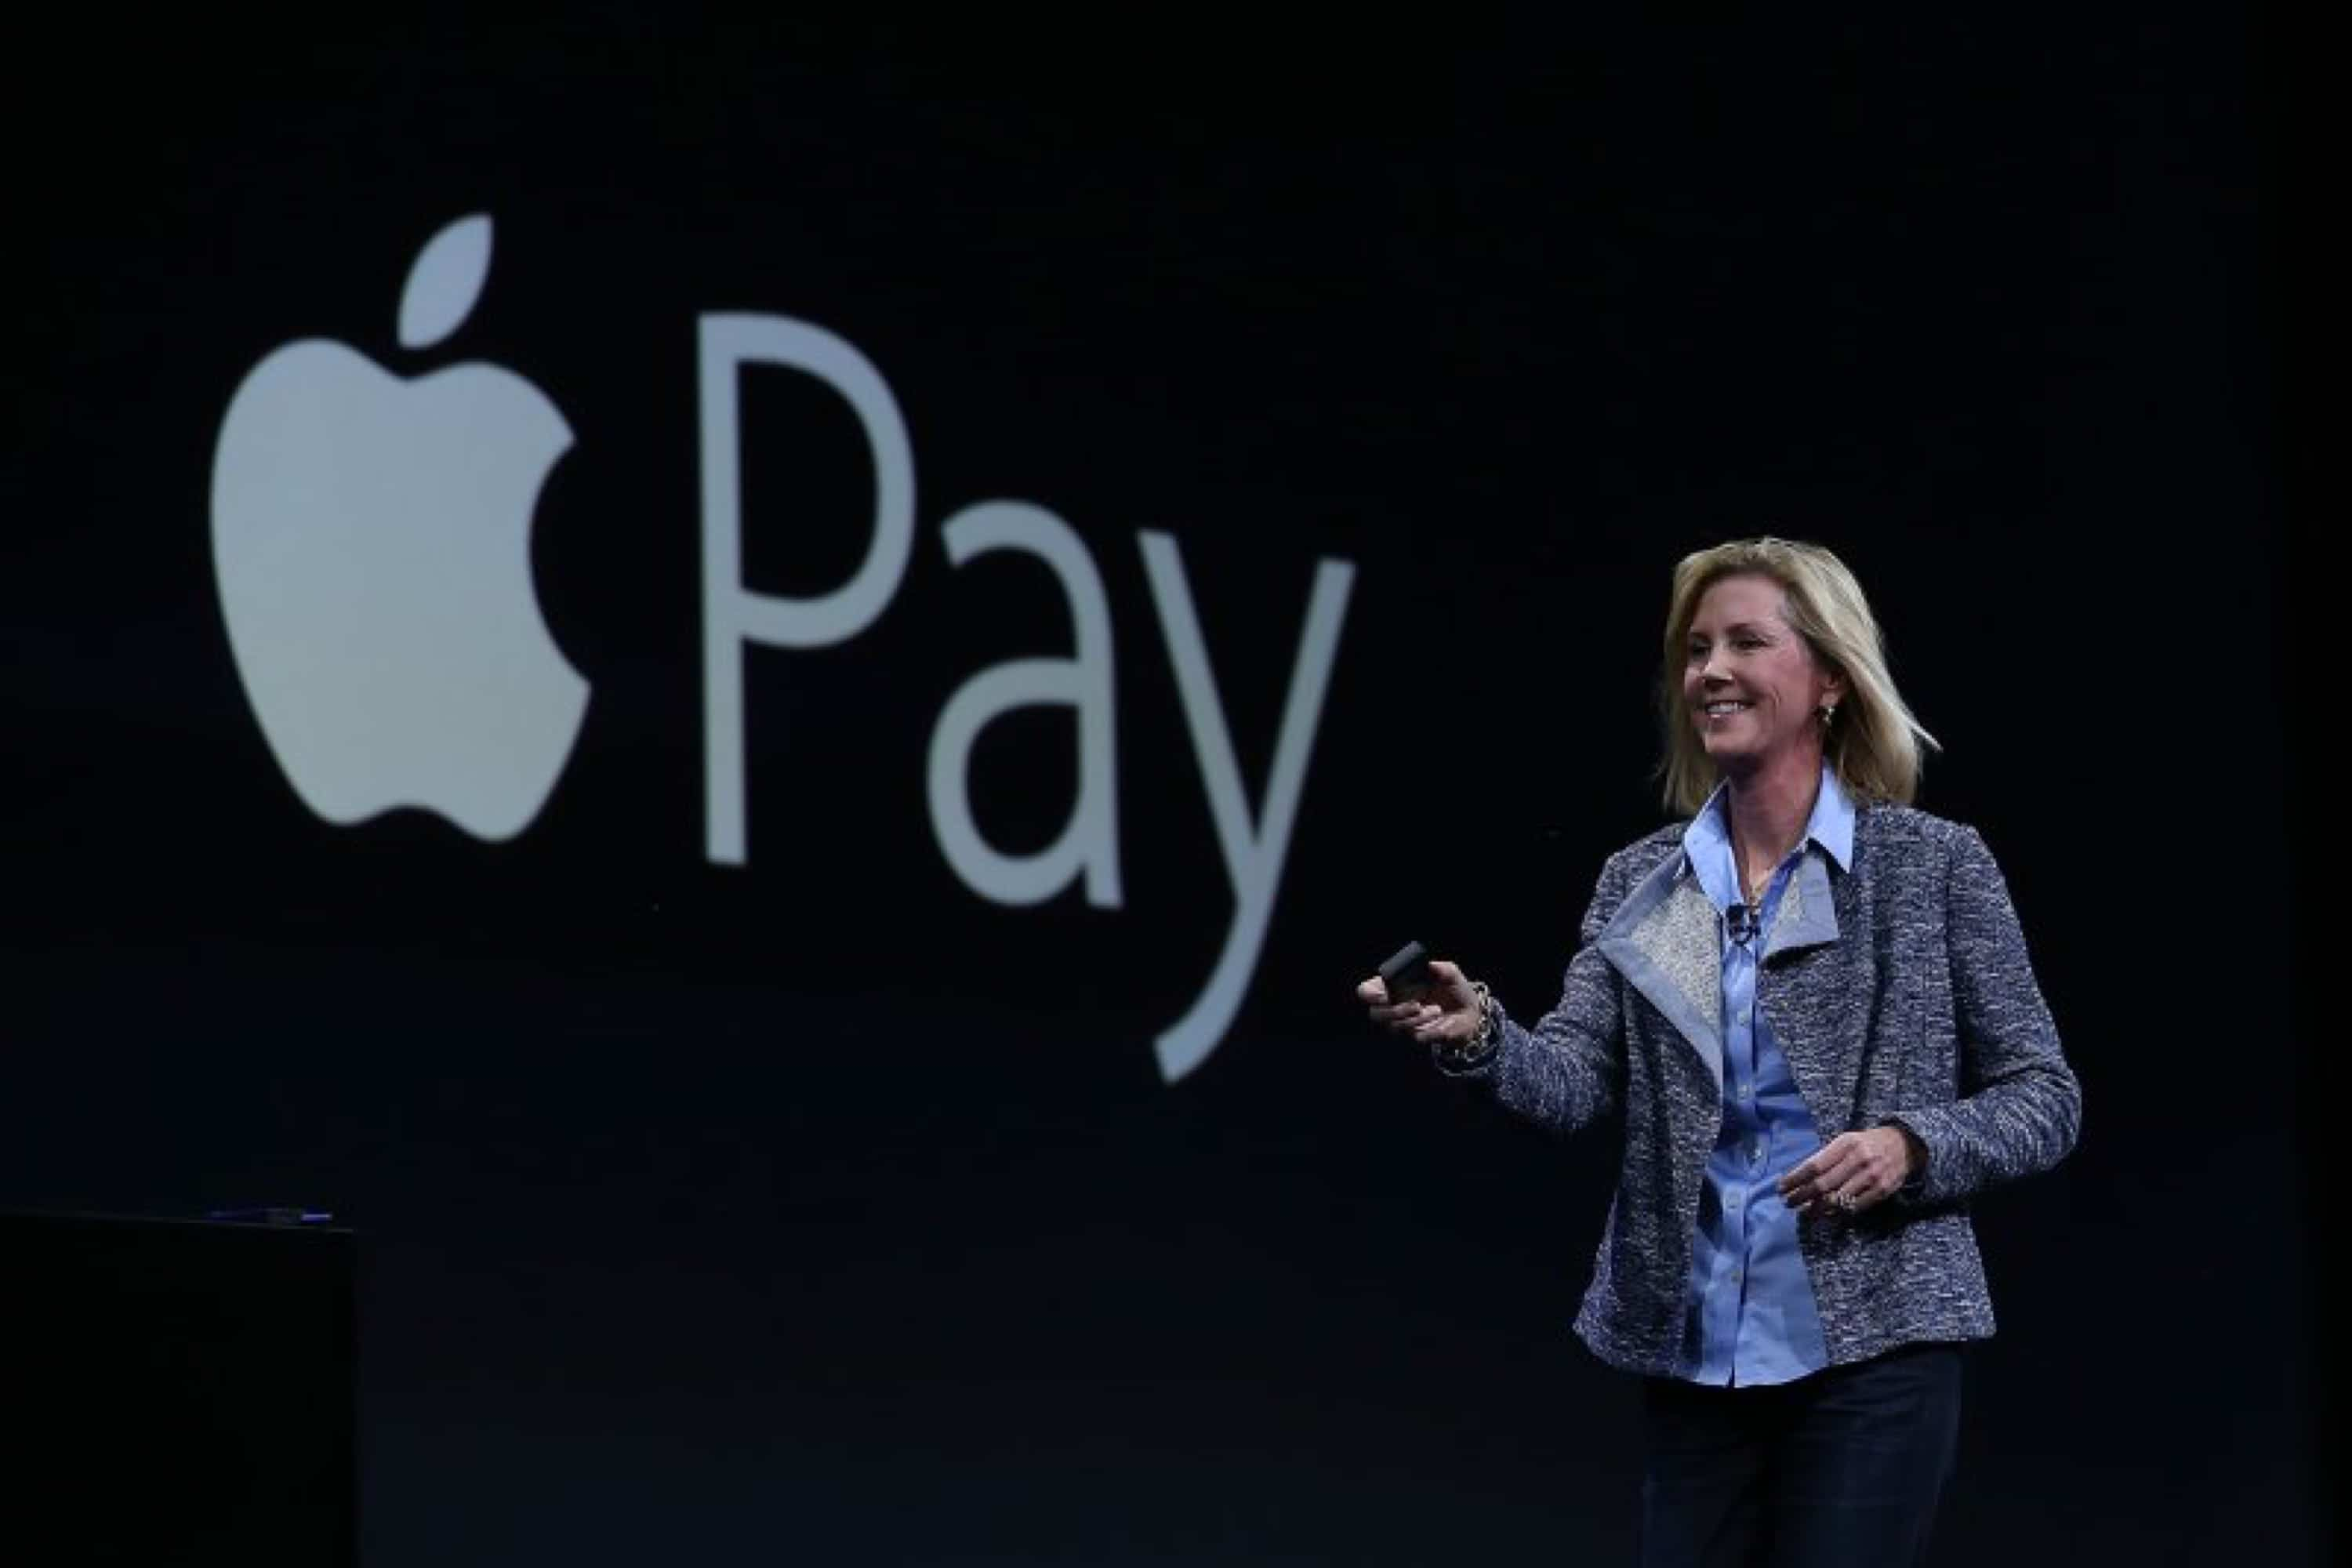 apple-pay-growth-during-pandemic-raises-antitrust-issues-20201218-3